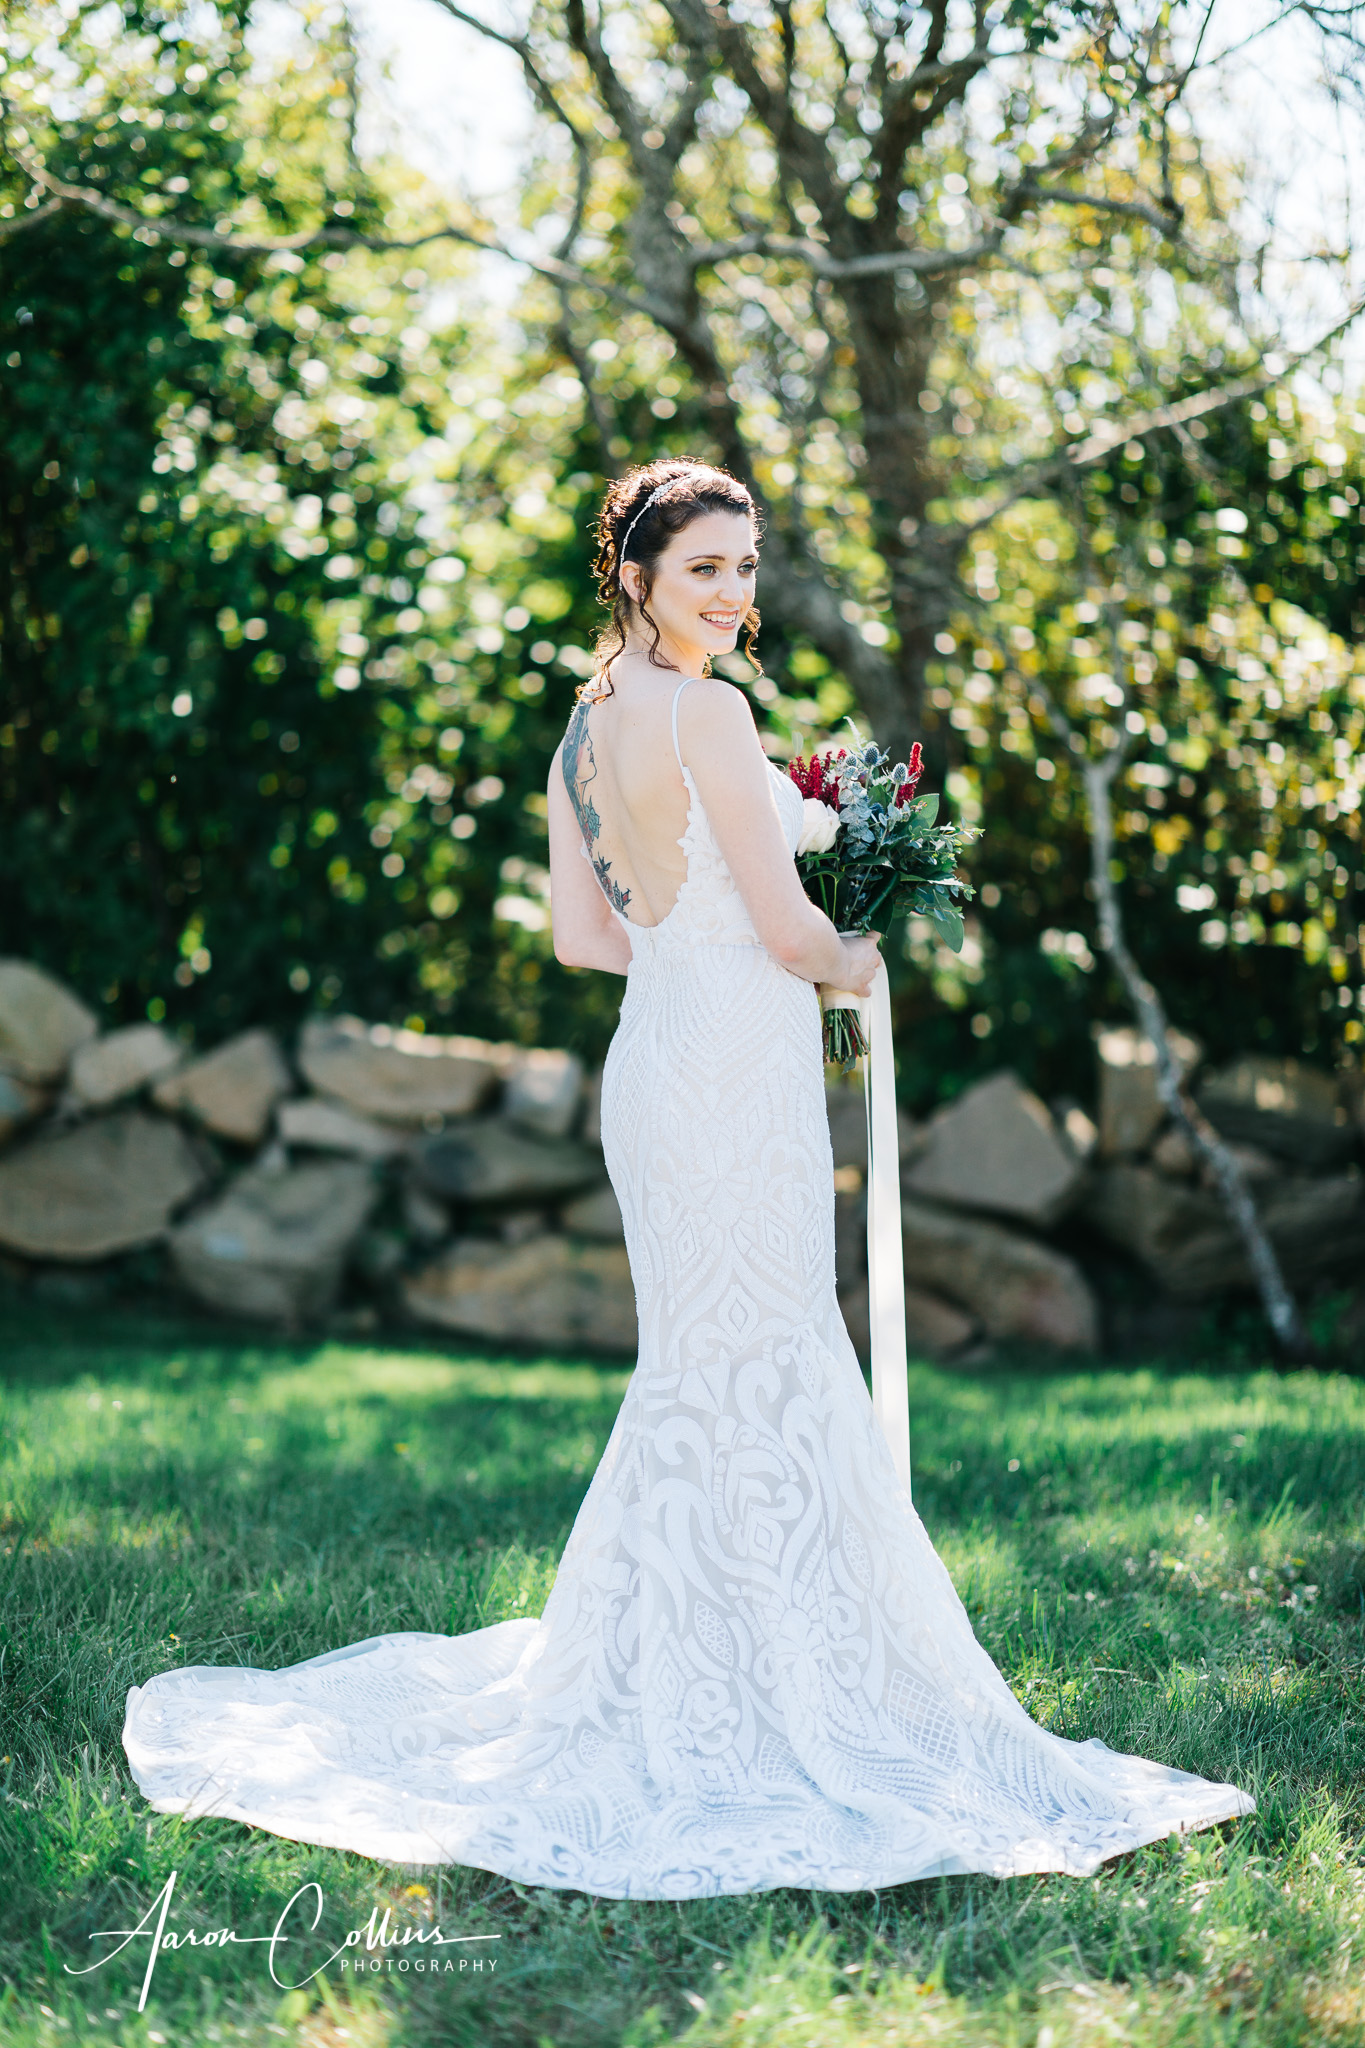 Full length portrait of the bride in her wedding dress outside in front of green leaves and grass, with her tattoo showing on the back